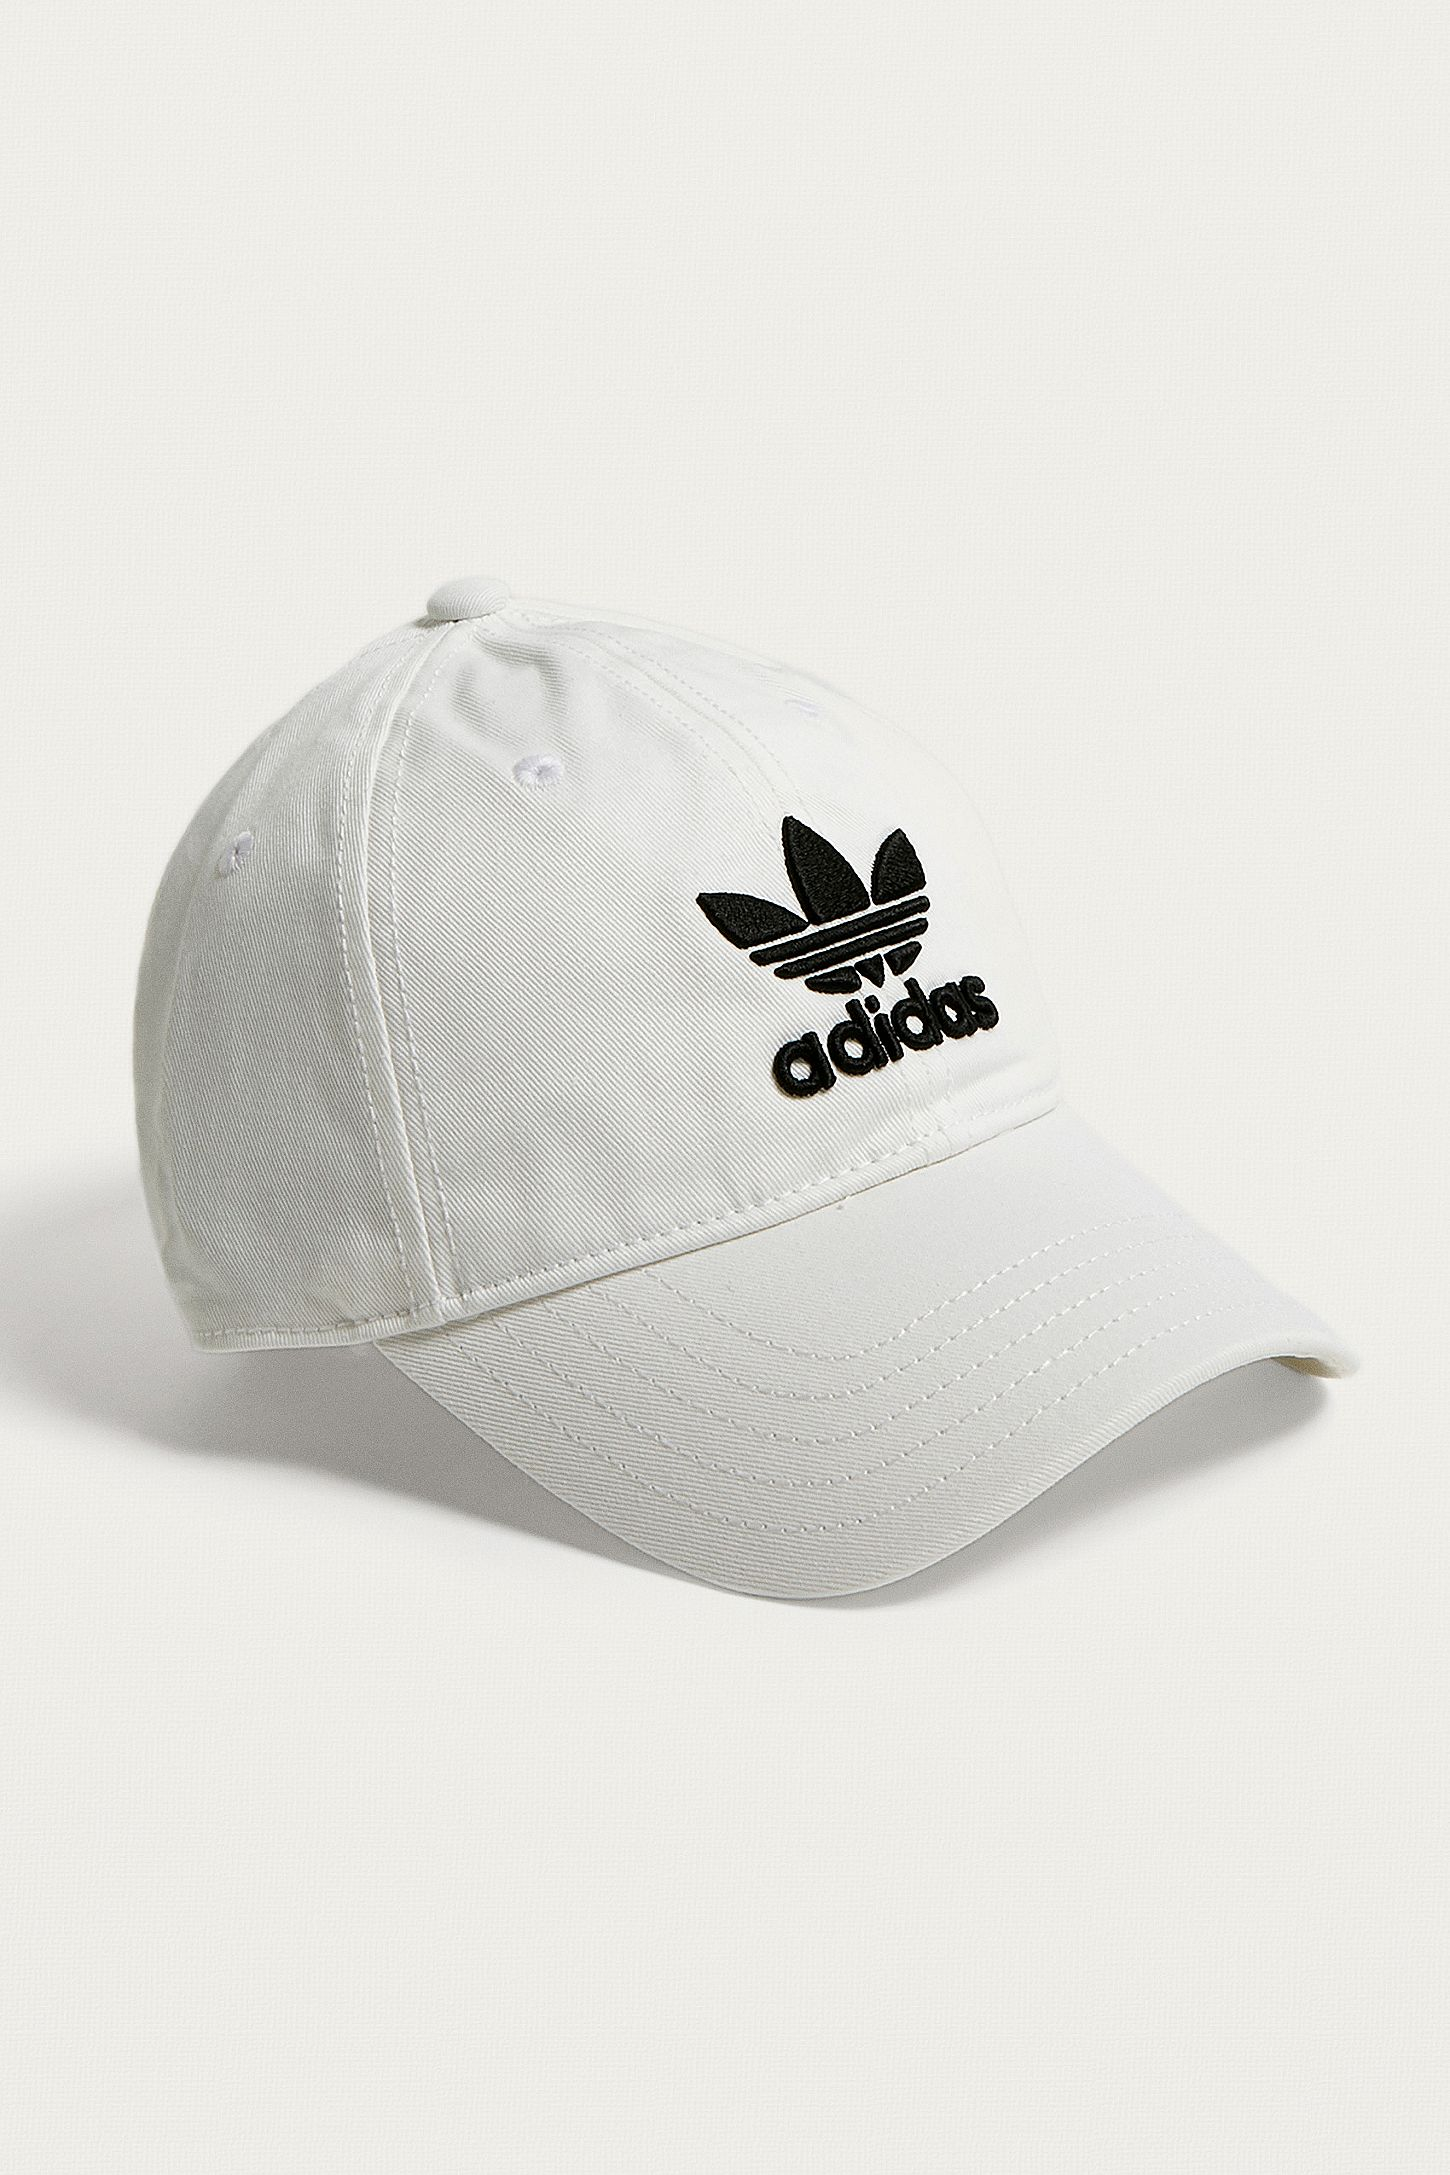 0c31f0268e4 adidas Originals White Trefoil Dad Cap